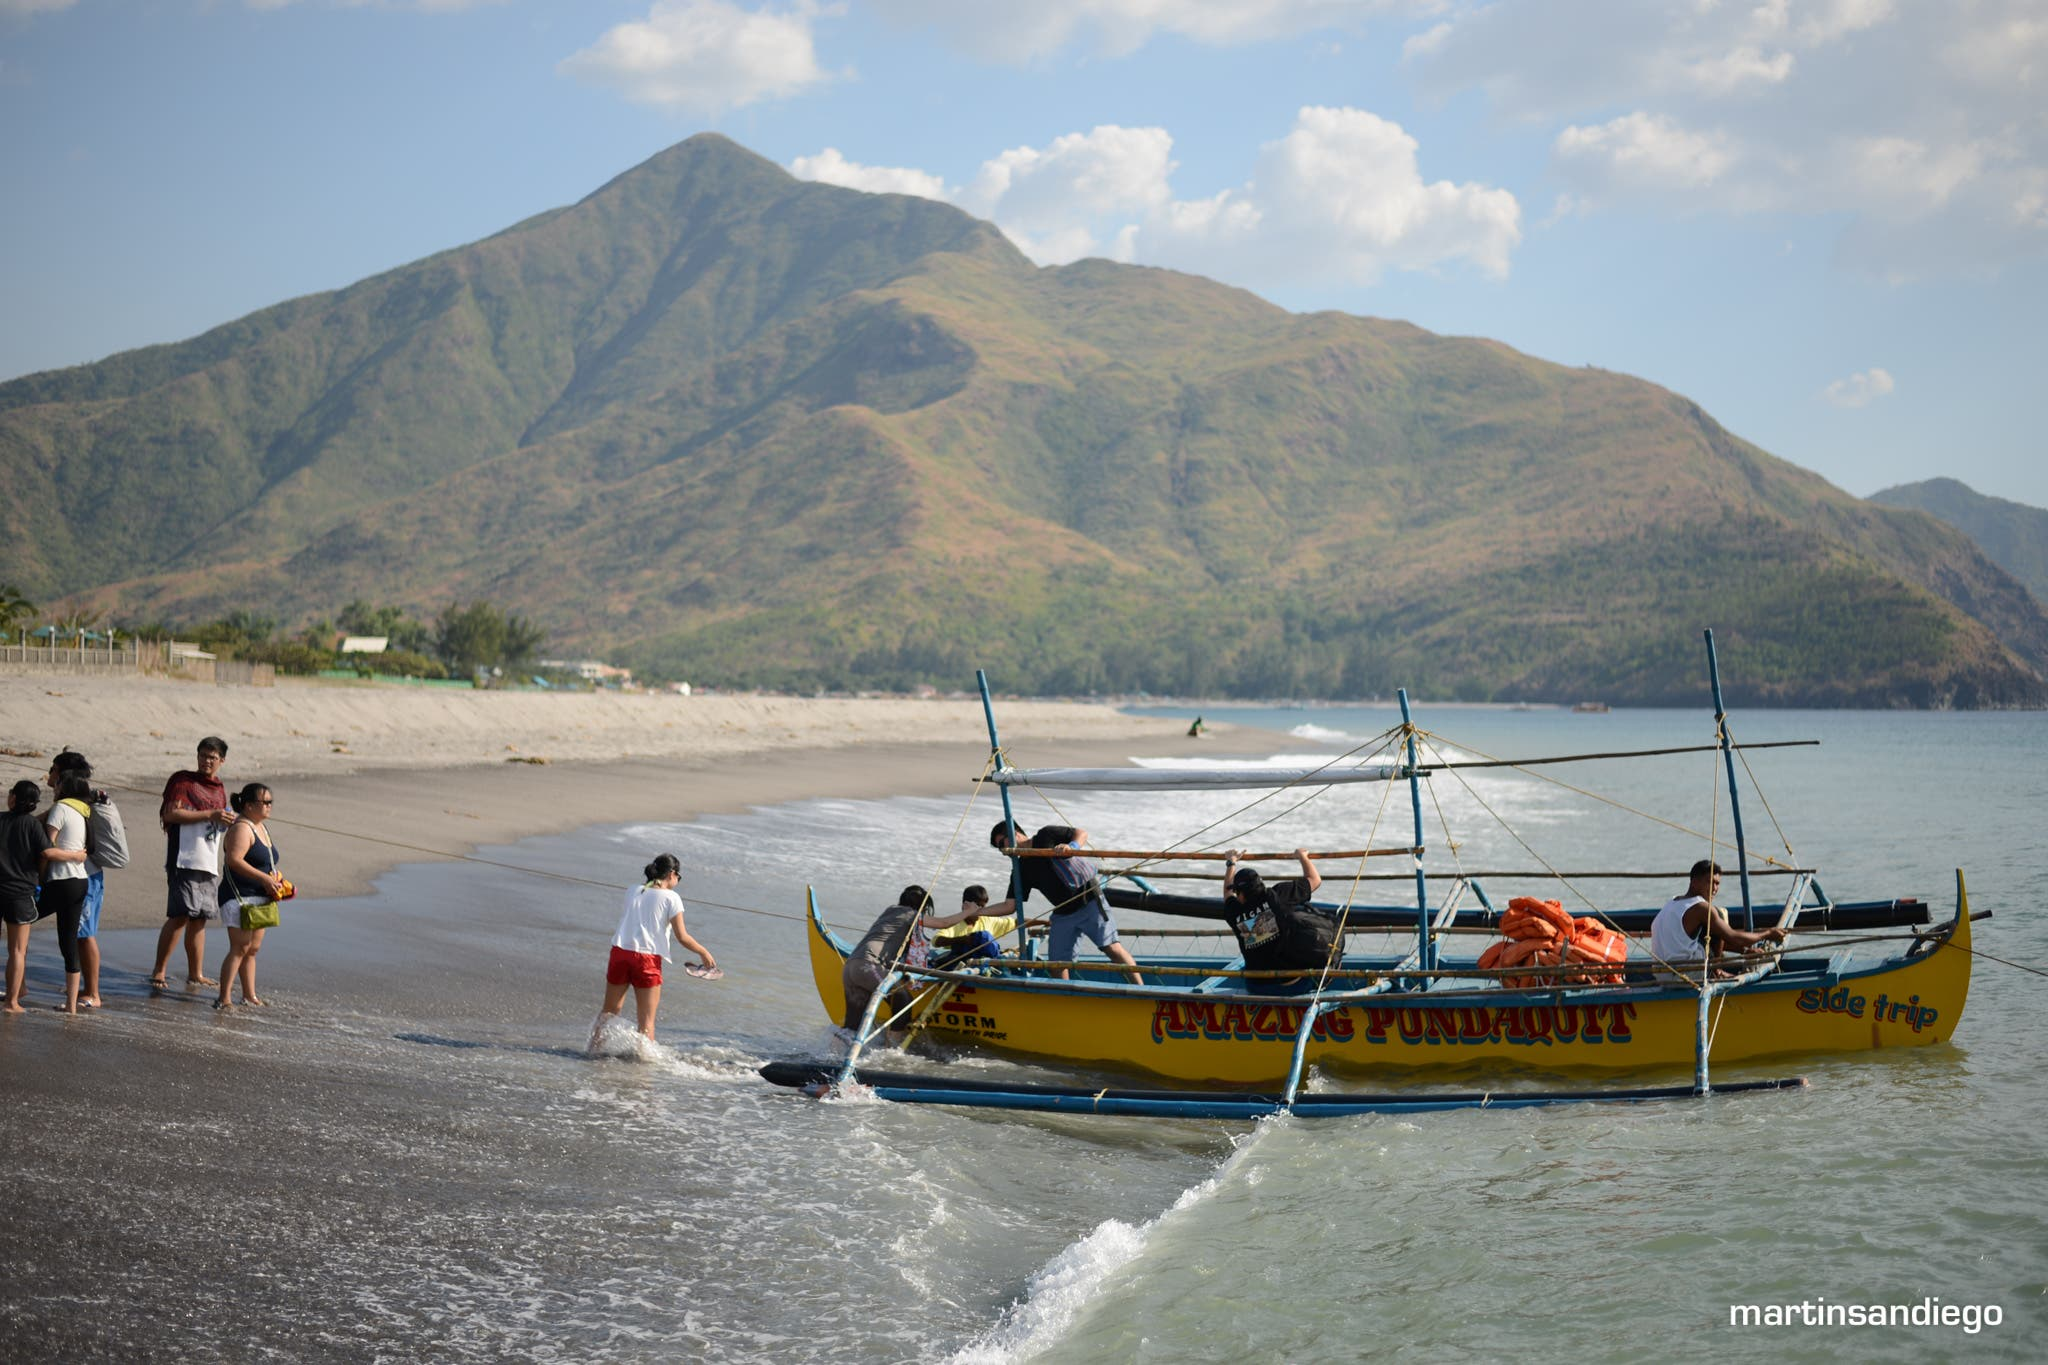 On to Zambales: Great Destinations for the Summer